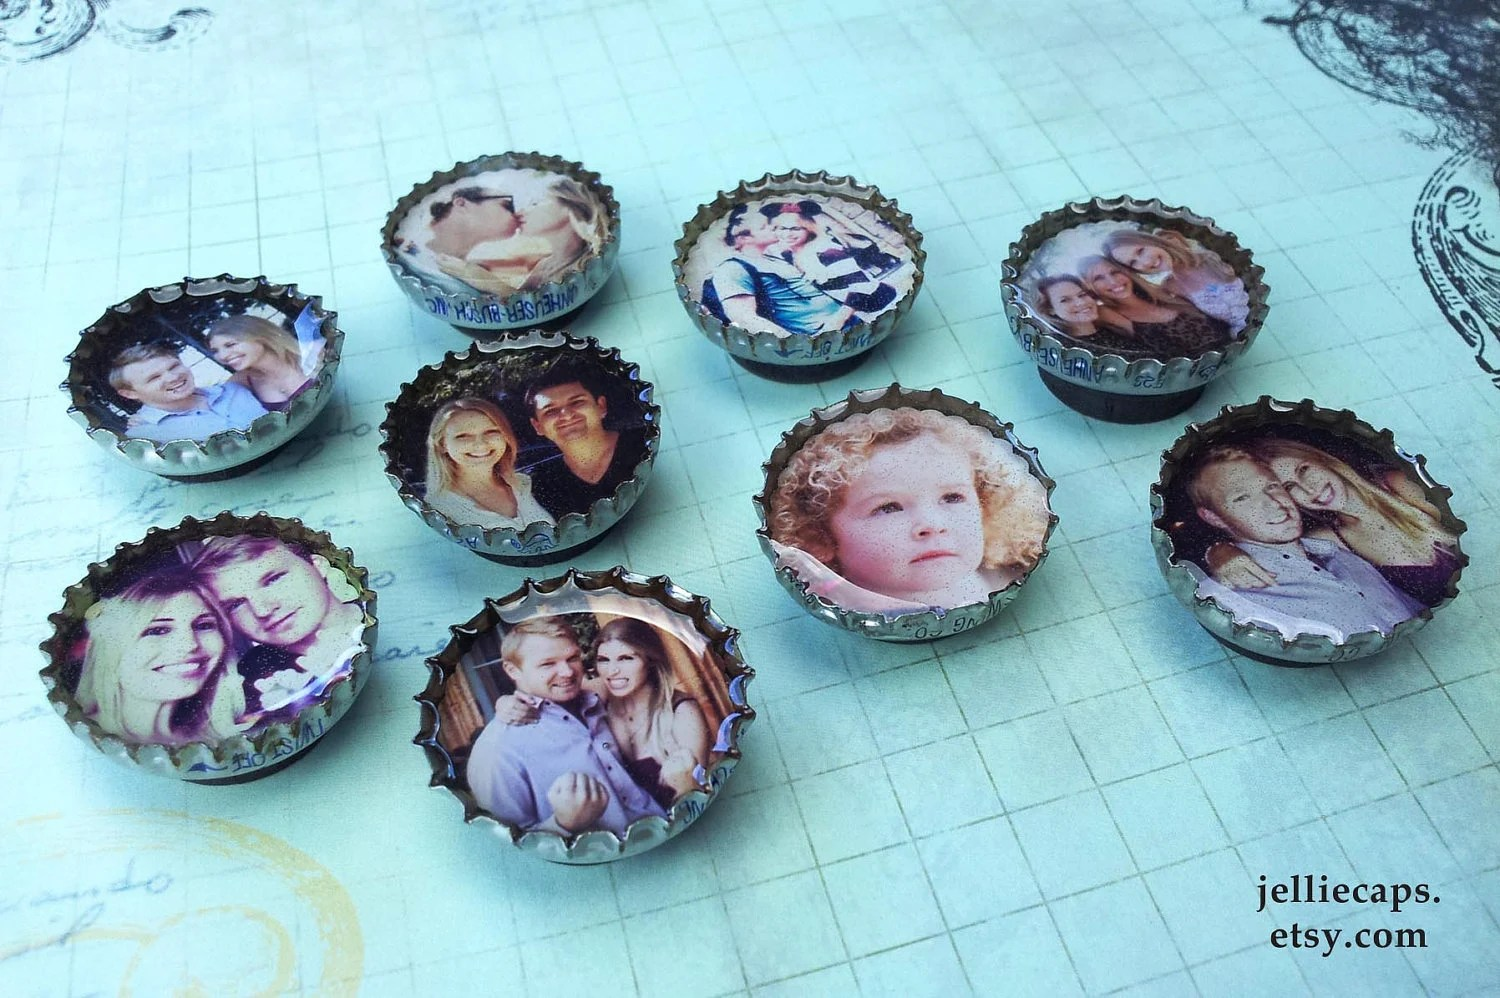 9 of YOUR favorite INSTAGRAM PHOTOS as Bottle Cap Magnets - JEllieCaps